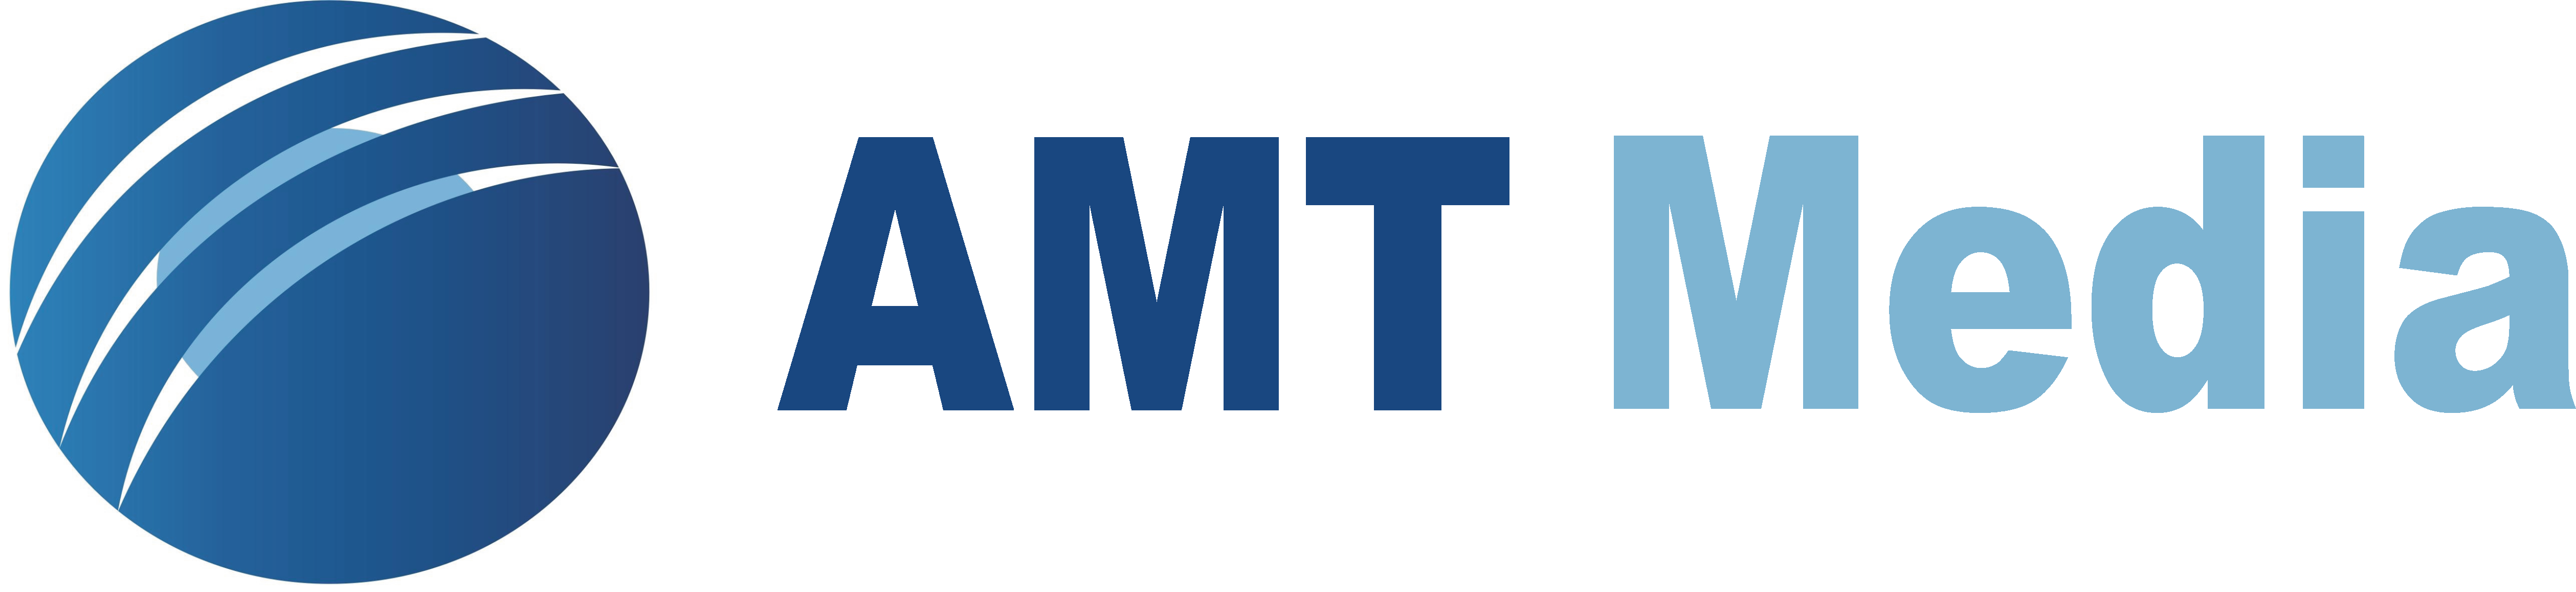 image of amt media logo at www.amtmedia.co.uk